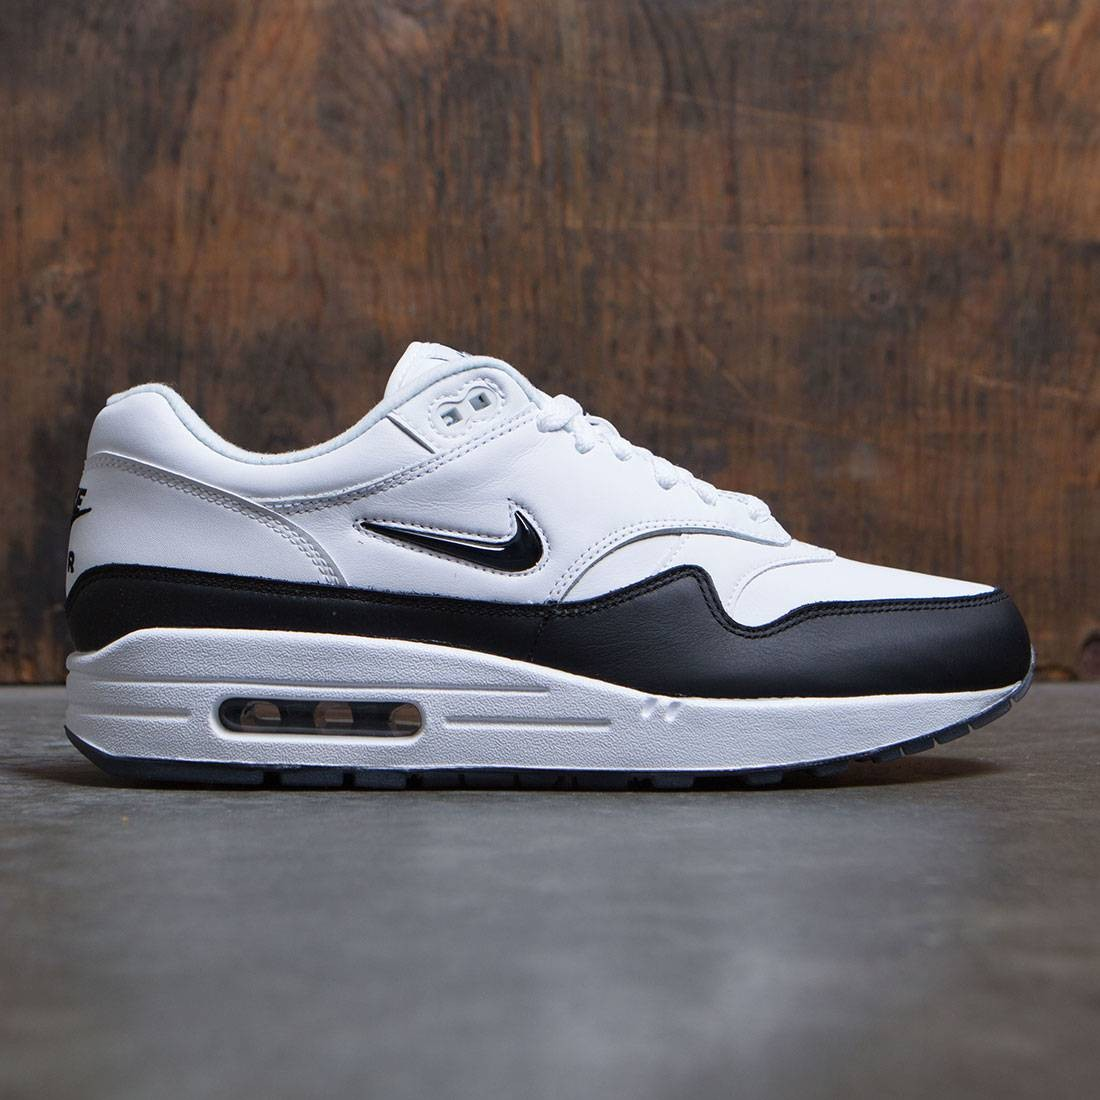 official photos 3981f 4c463 nike men air max 1 premium sc white black black